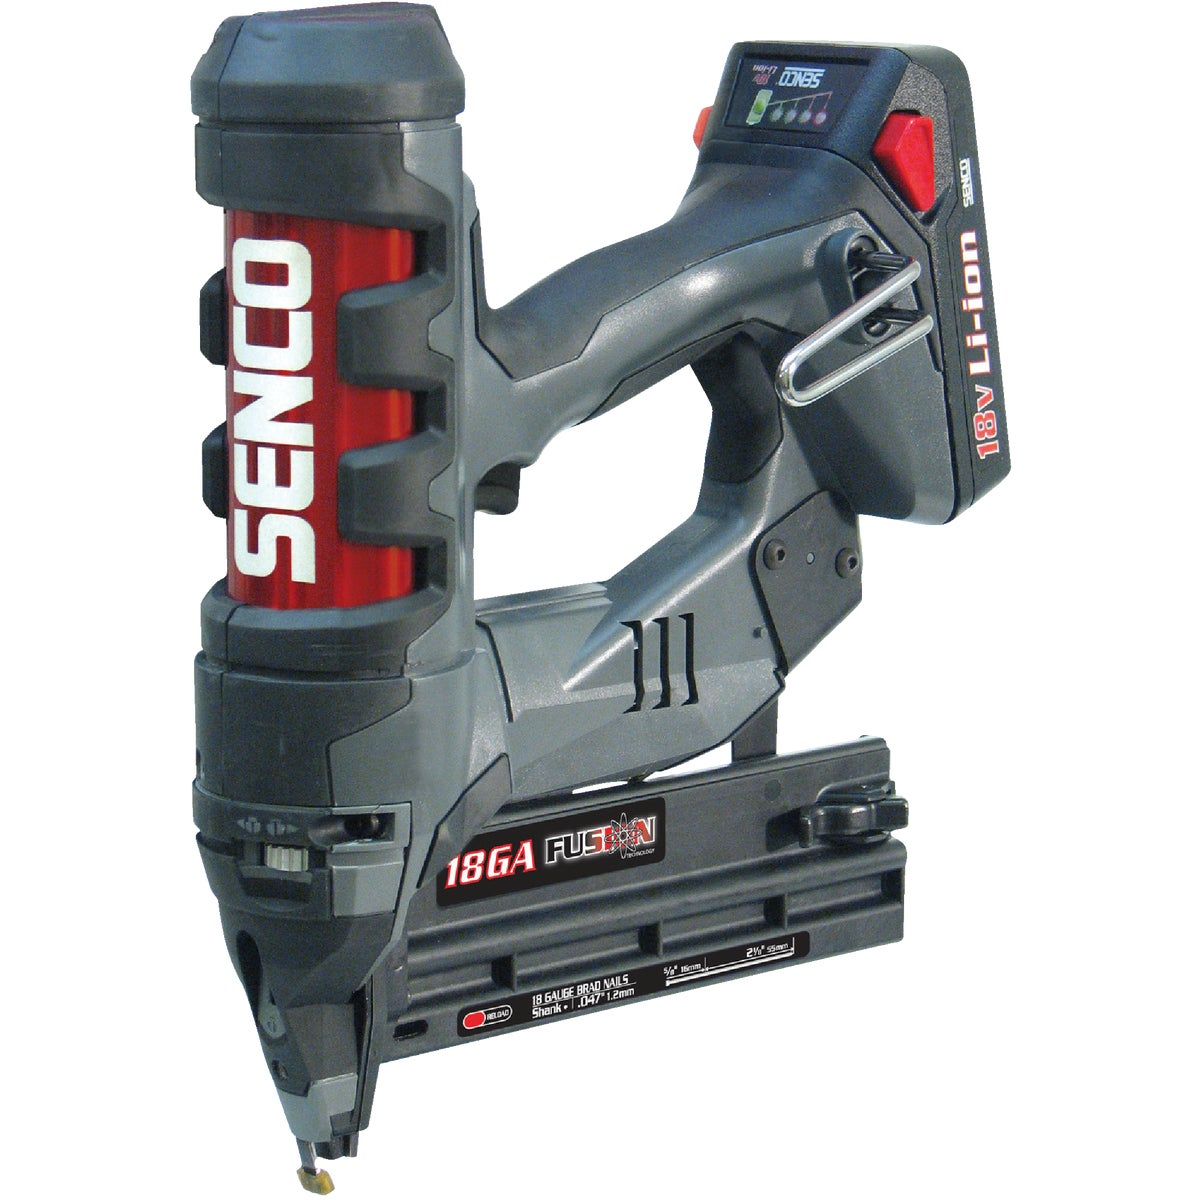 "18G 2-1/8"" BRAD NAILER - 6E0001N by Senco Brands"